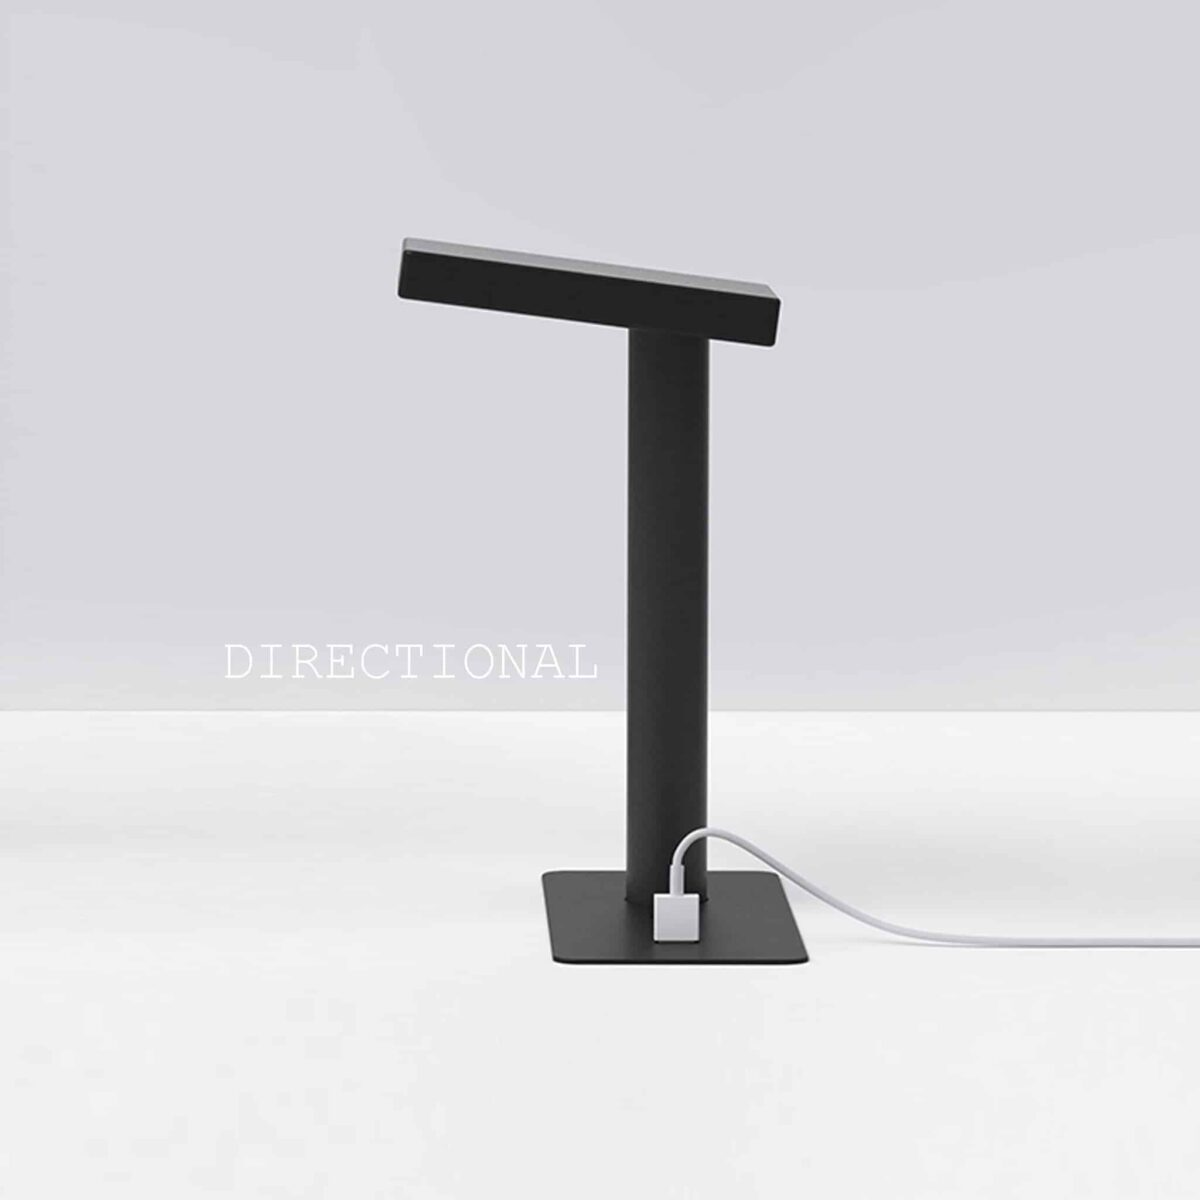 Wastberg_Busby_Lamp_004